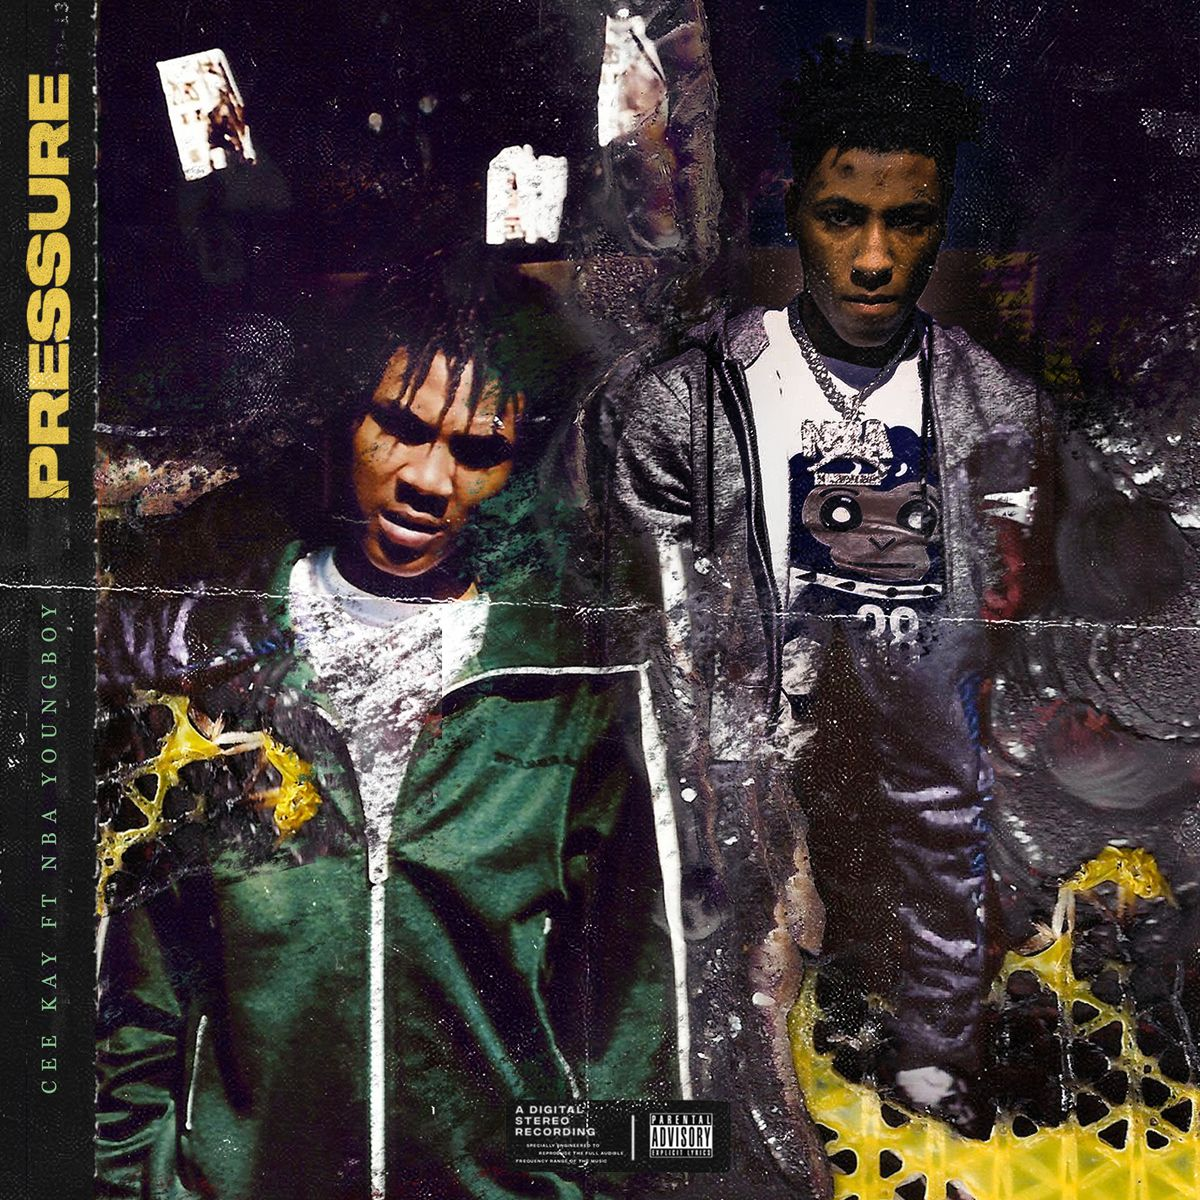 """New Music: Cee Kay – """"Pressure"""" (feat. NBA YoungBoy)"""